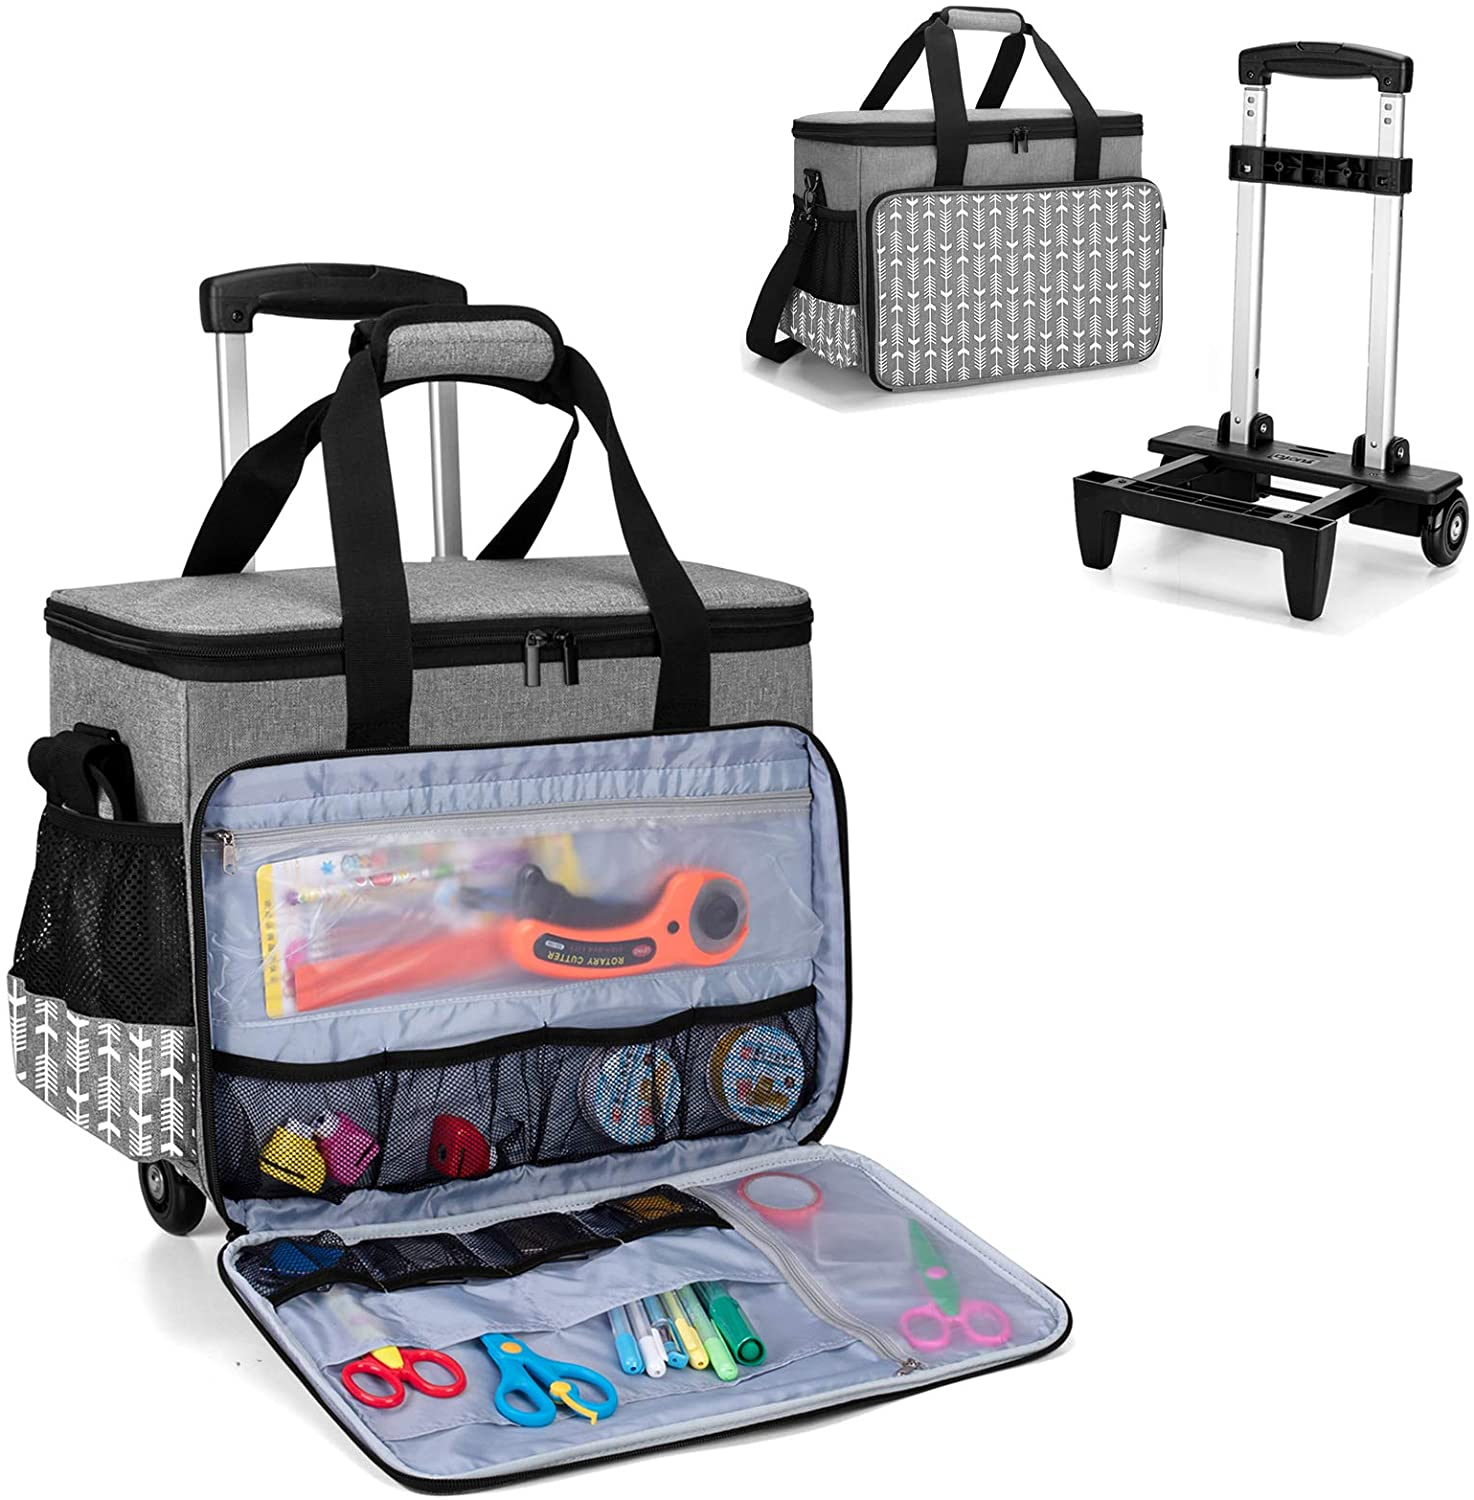 Yarwo Rolling Super beauty product restock quality top Scrapbook Tote Bag Wheels security with Detachable Trolley